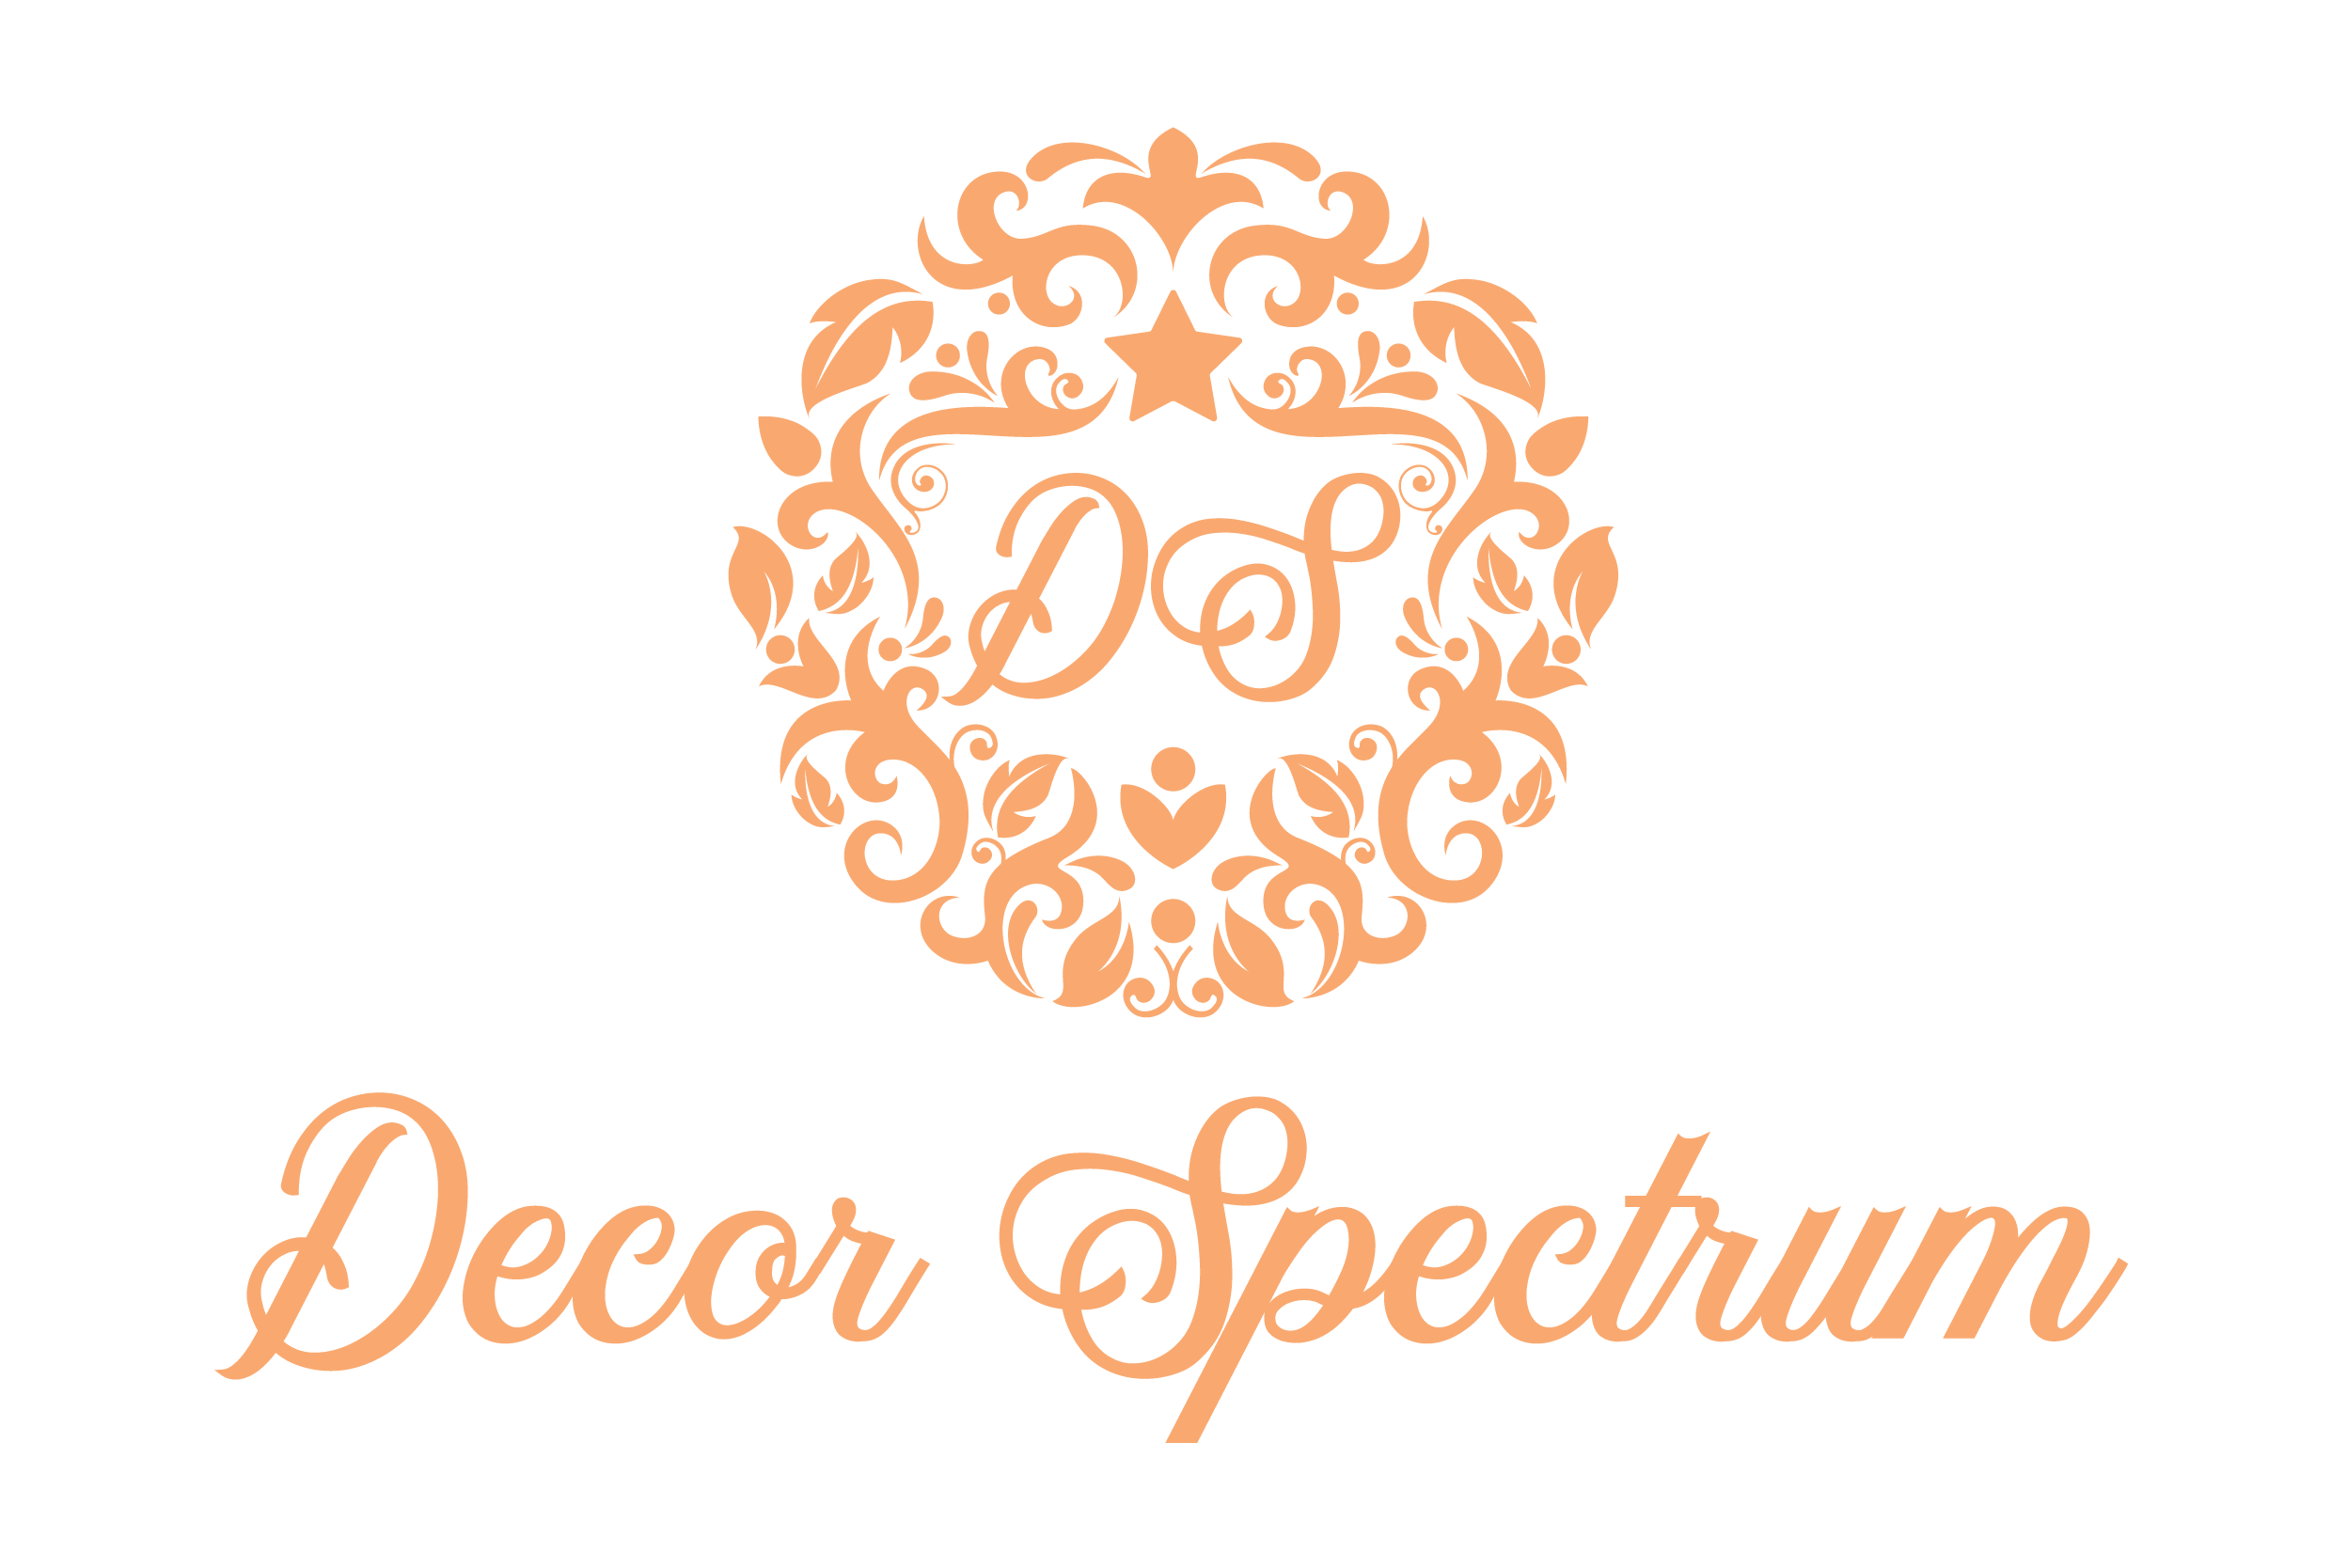 Decor Spectrum - Exquisite Handcrafted Gifts and Decor